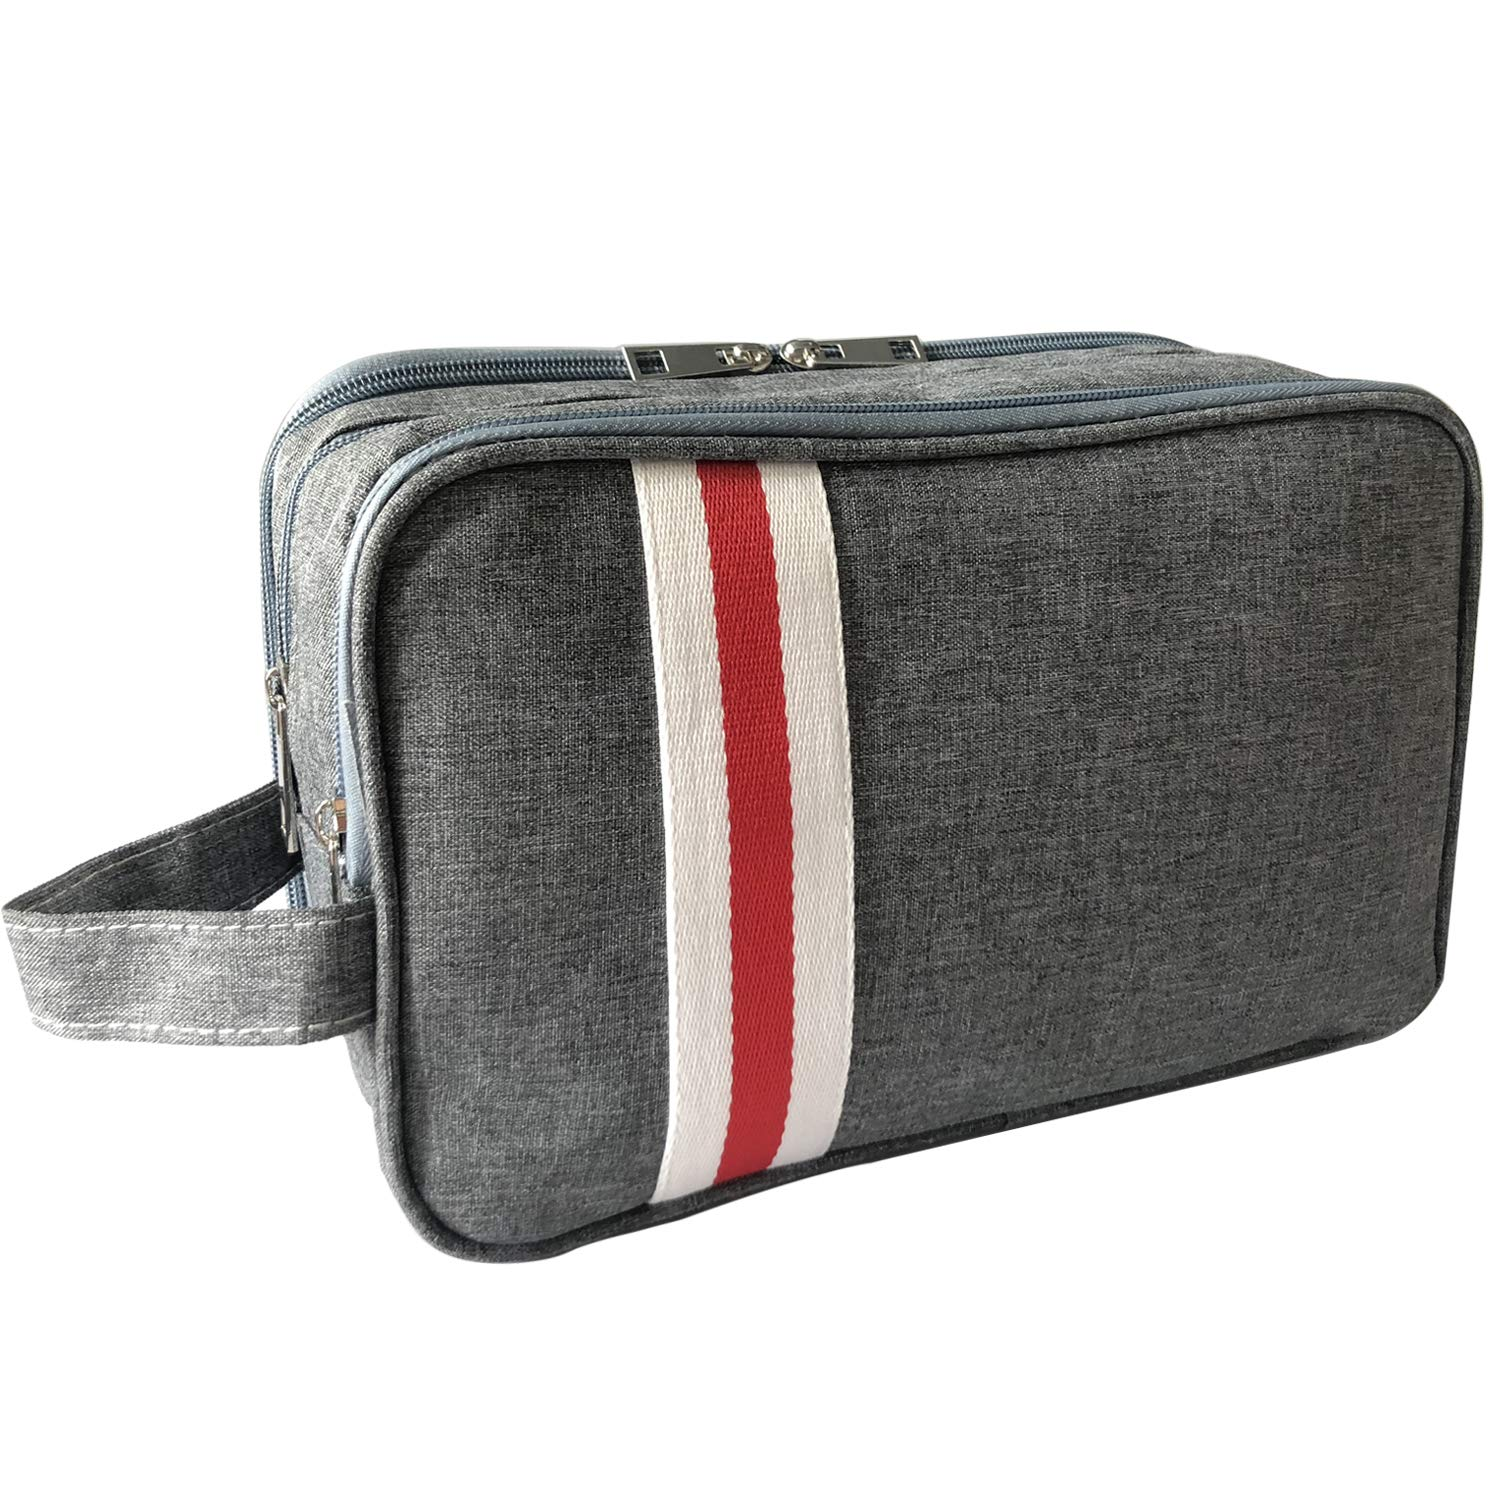 Travel Toiletry Bag, Toiletry Bag for Women Waterproof Wash Bag for Travel 3 Layers Portable Travel Hygiene Bag with Waterproof Isolation Compartment Cosmetic Travel Bags for Women Gray